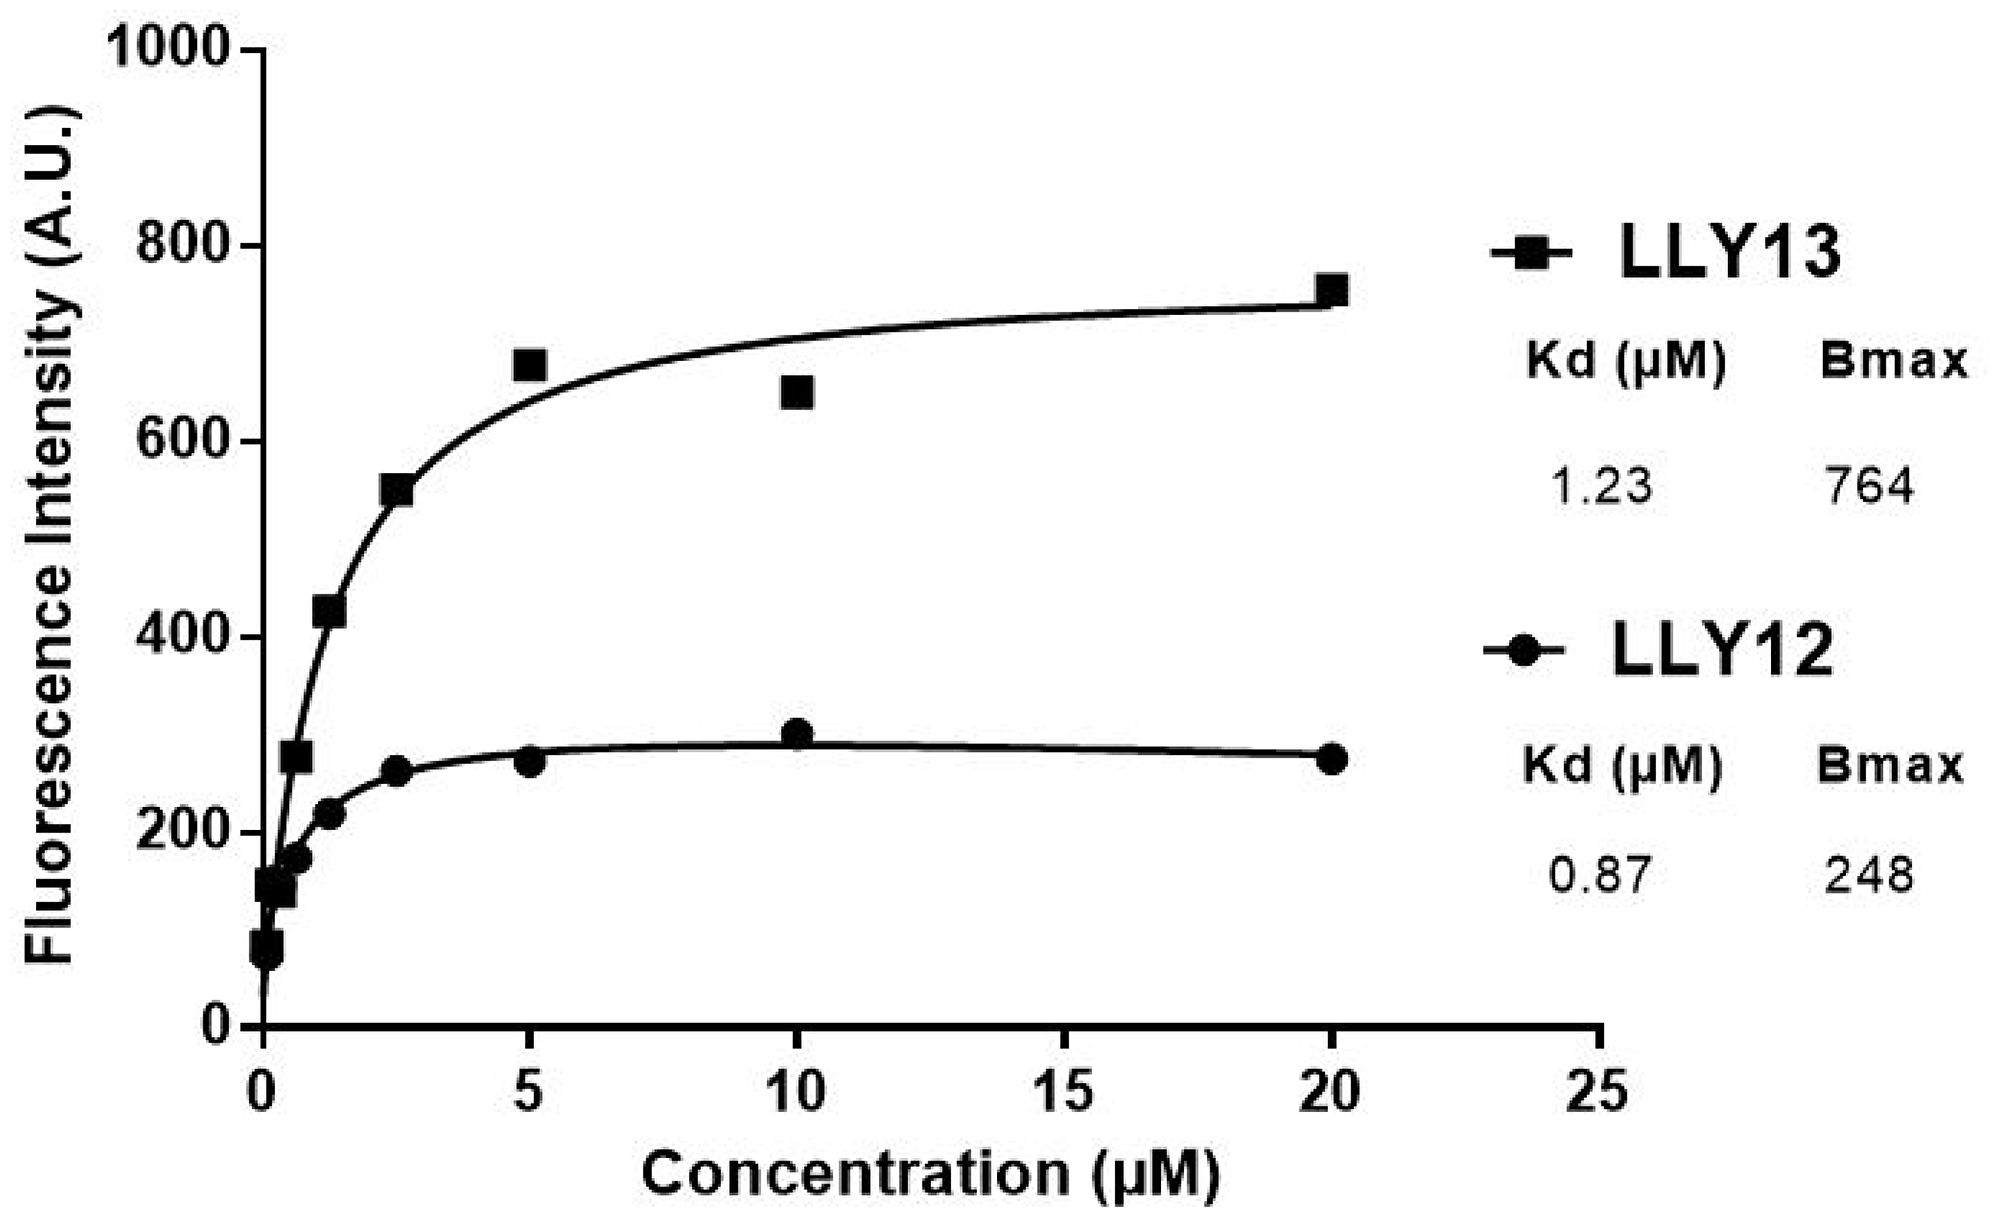 Comparison of binding affinity of LLY12 and LLY13.